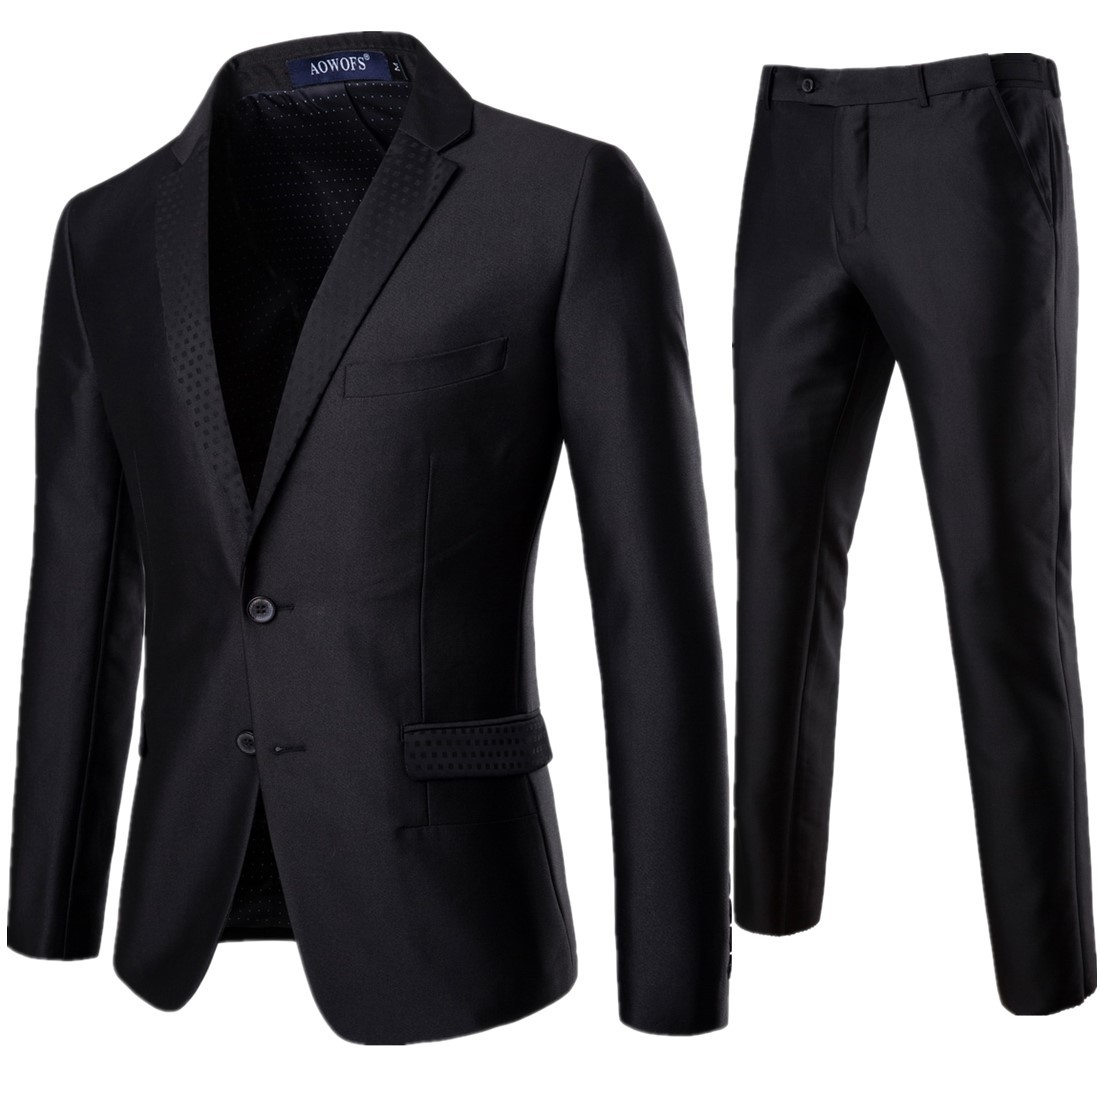 2019 Men'S Suits Set Of 2 Sets Of Business Luxury Dresses Groomsmen Groom Wedding Dress Party Party Costumes